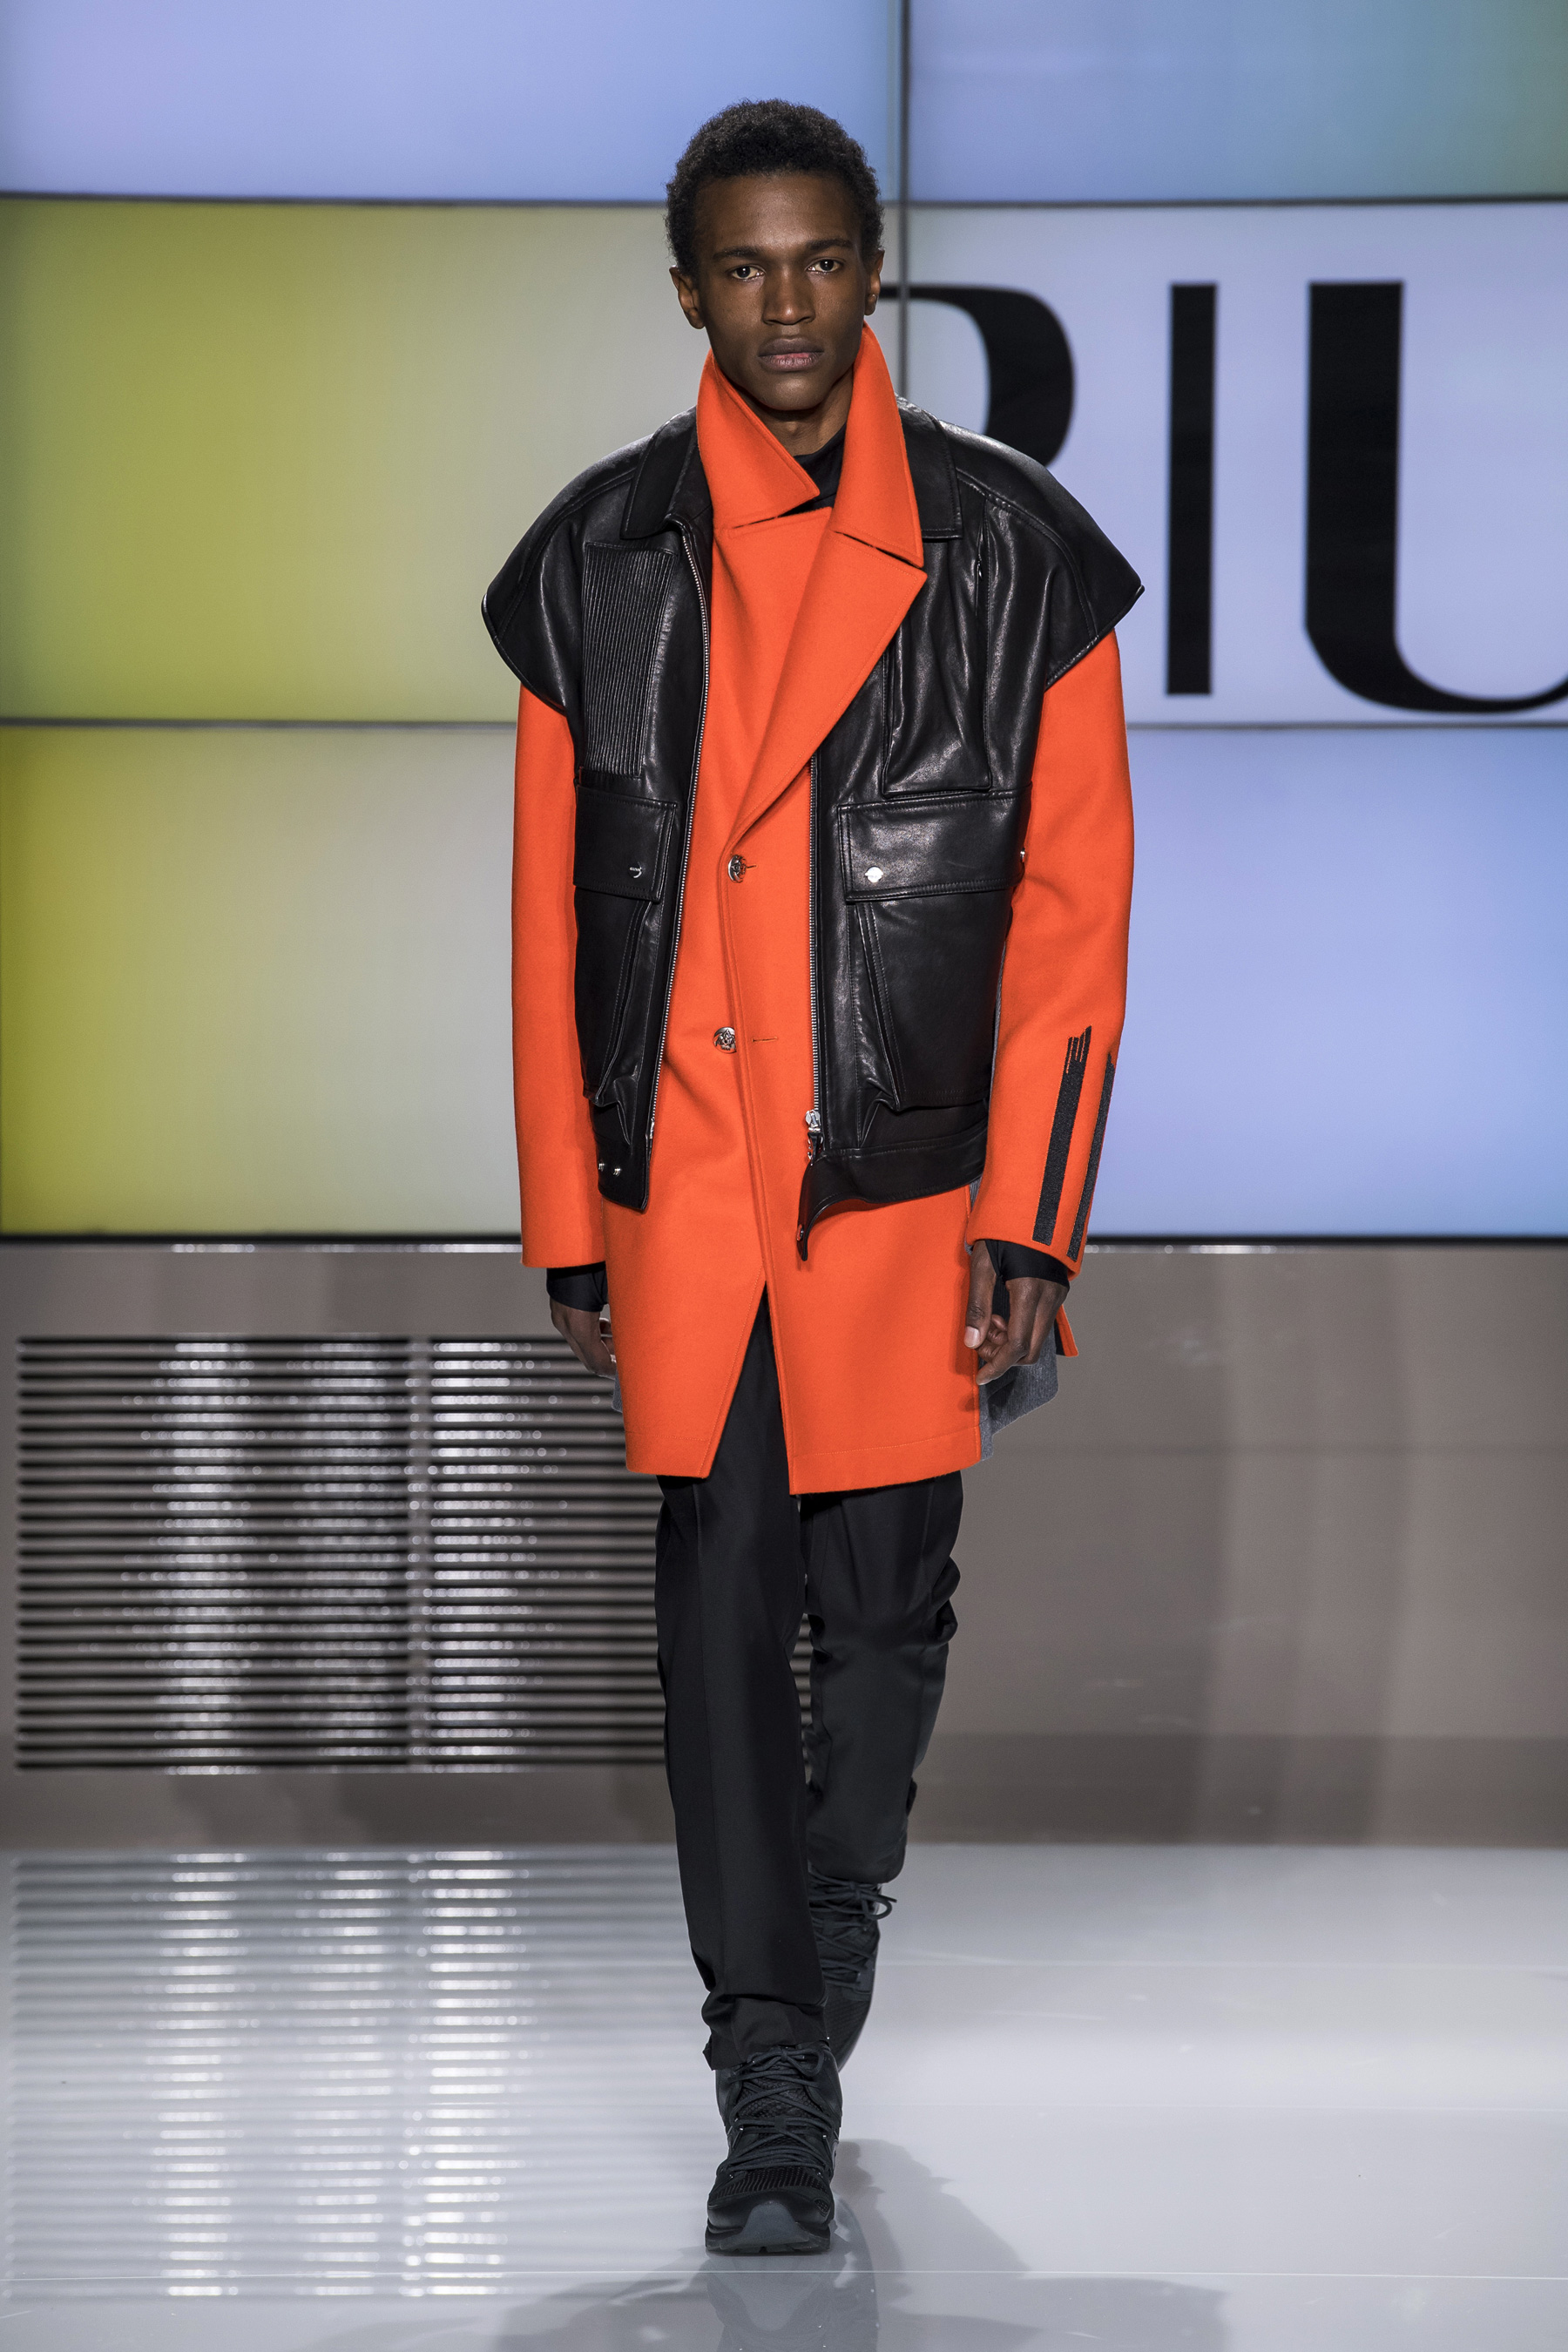 Orange Crush Fall 2019 Menswear Fashion Trend